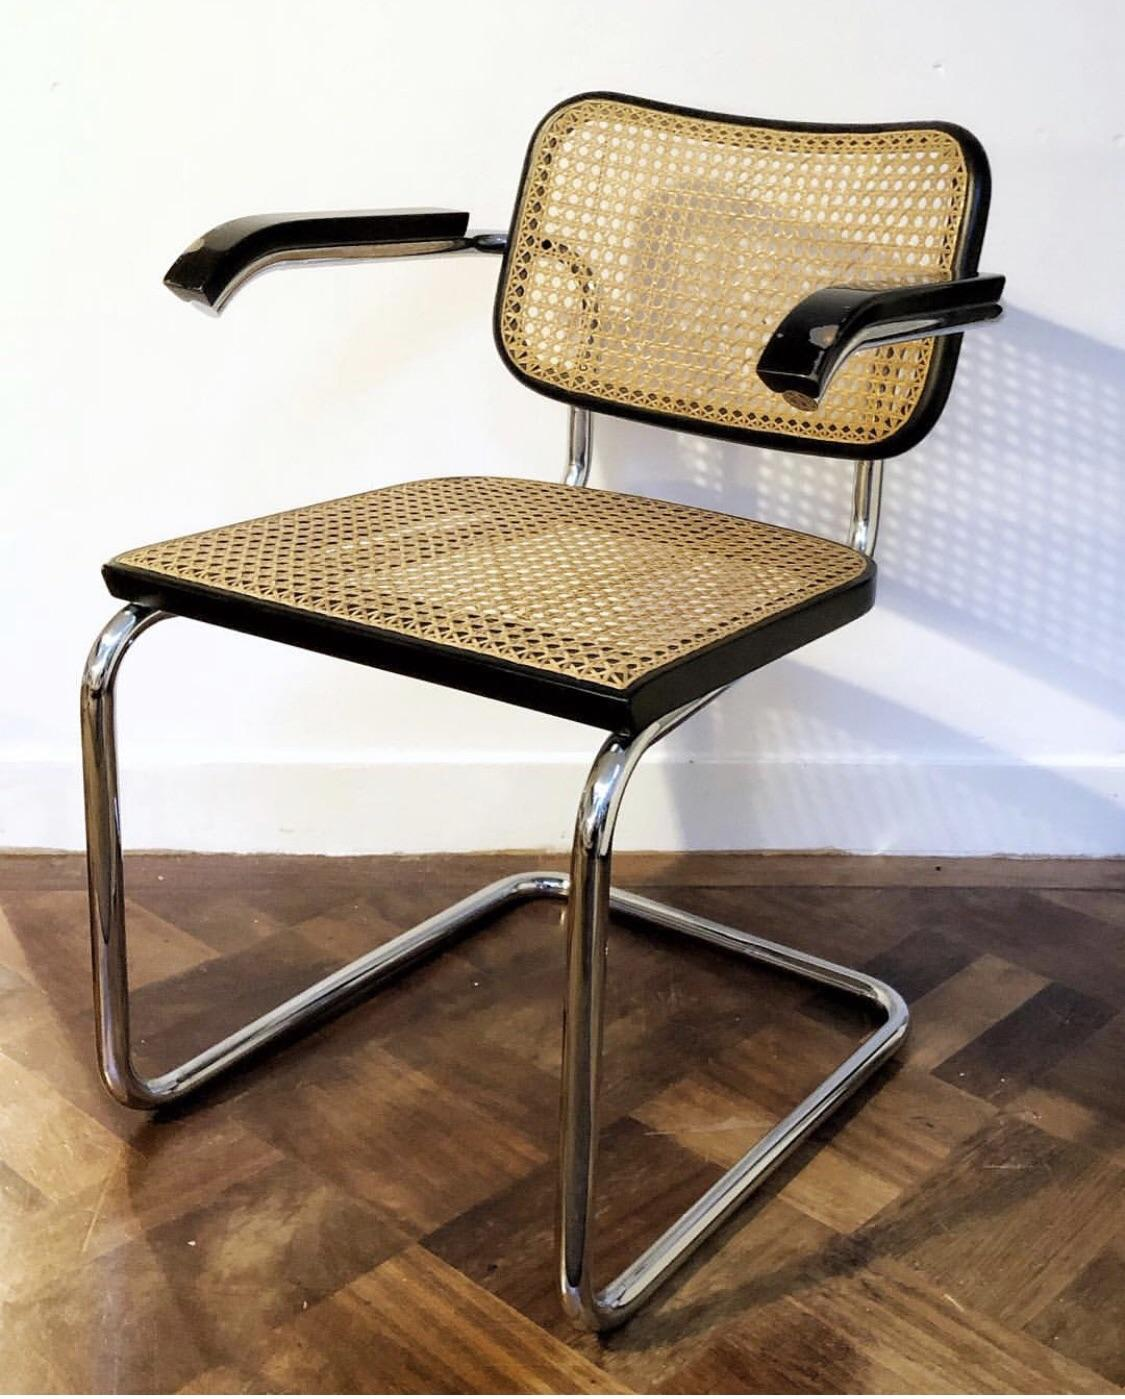 Marcel Breuer My Favourite Chair In My House: 1960's Cesca Chair From Marcel Breuer For Gavina. : Buyitforlife